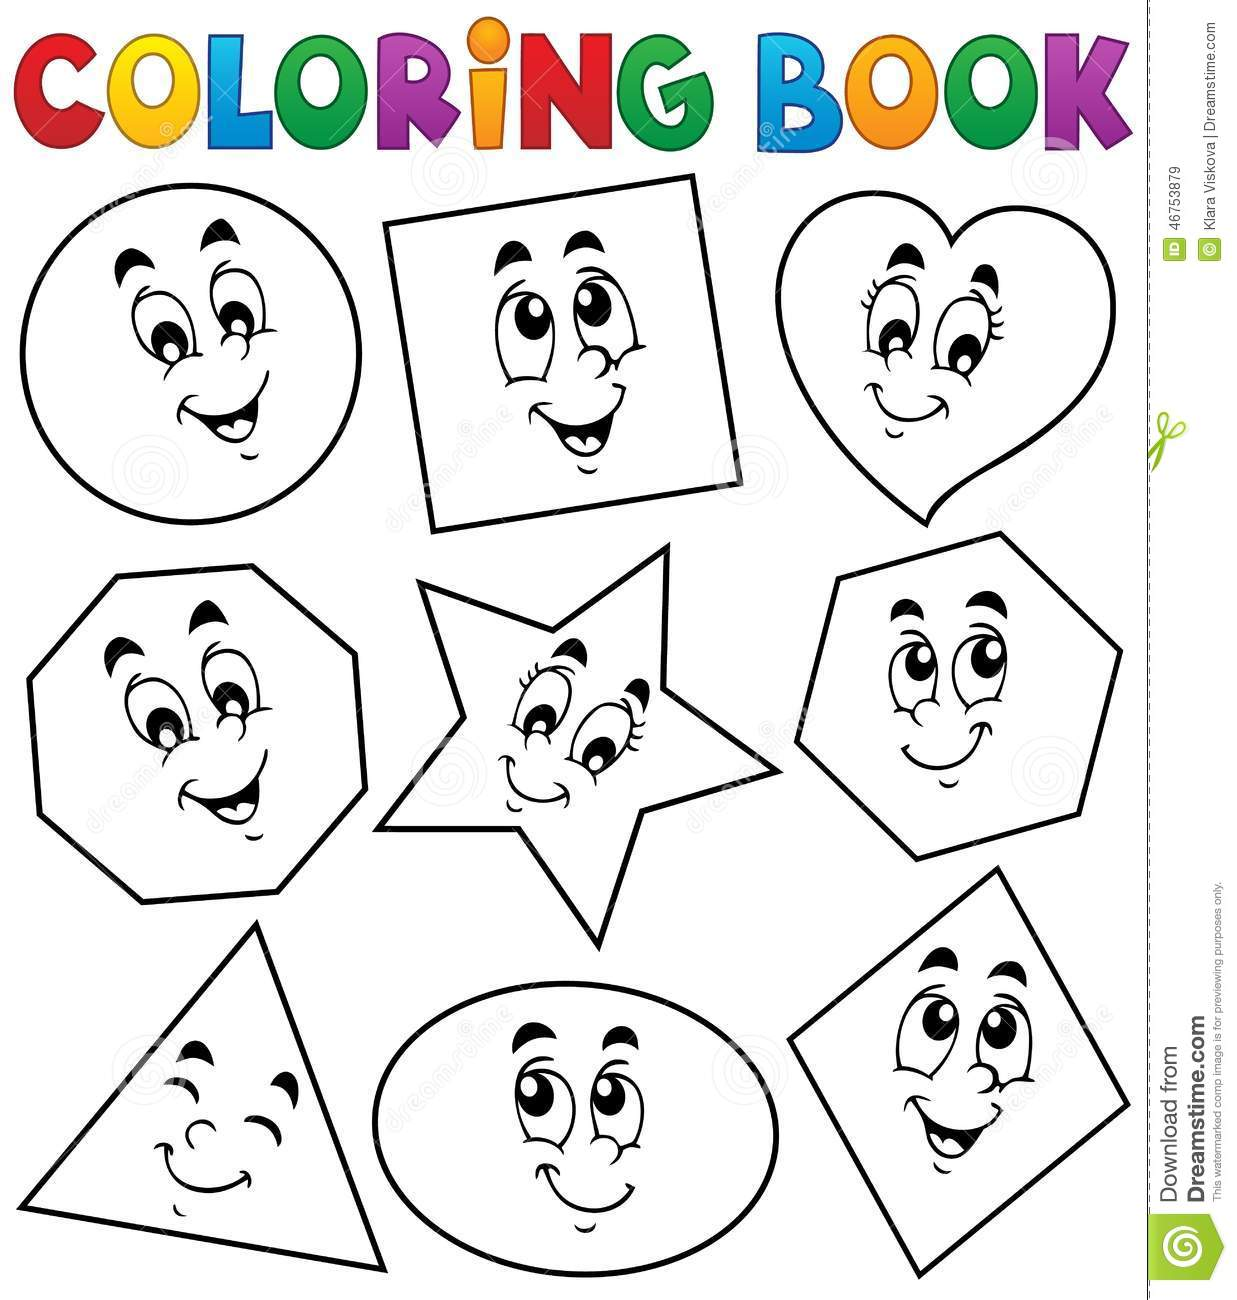 Coloring Shapes Stock Illustrations 4 013 Coloring Shapes Stock Illustrations Vectors Clipart Dreamstime